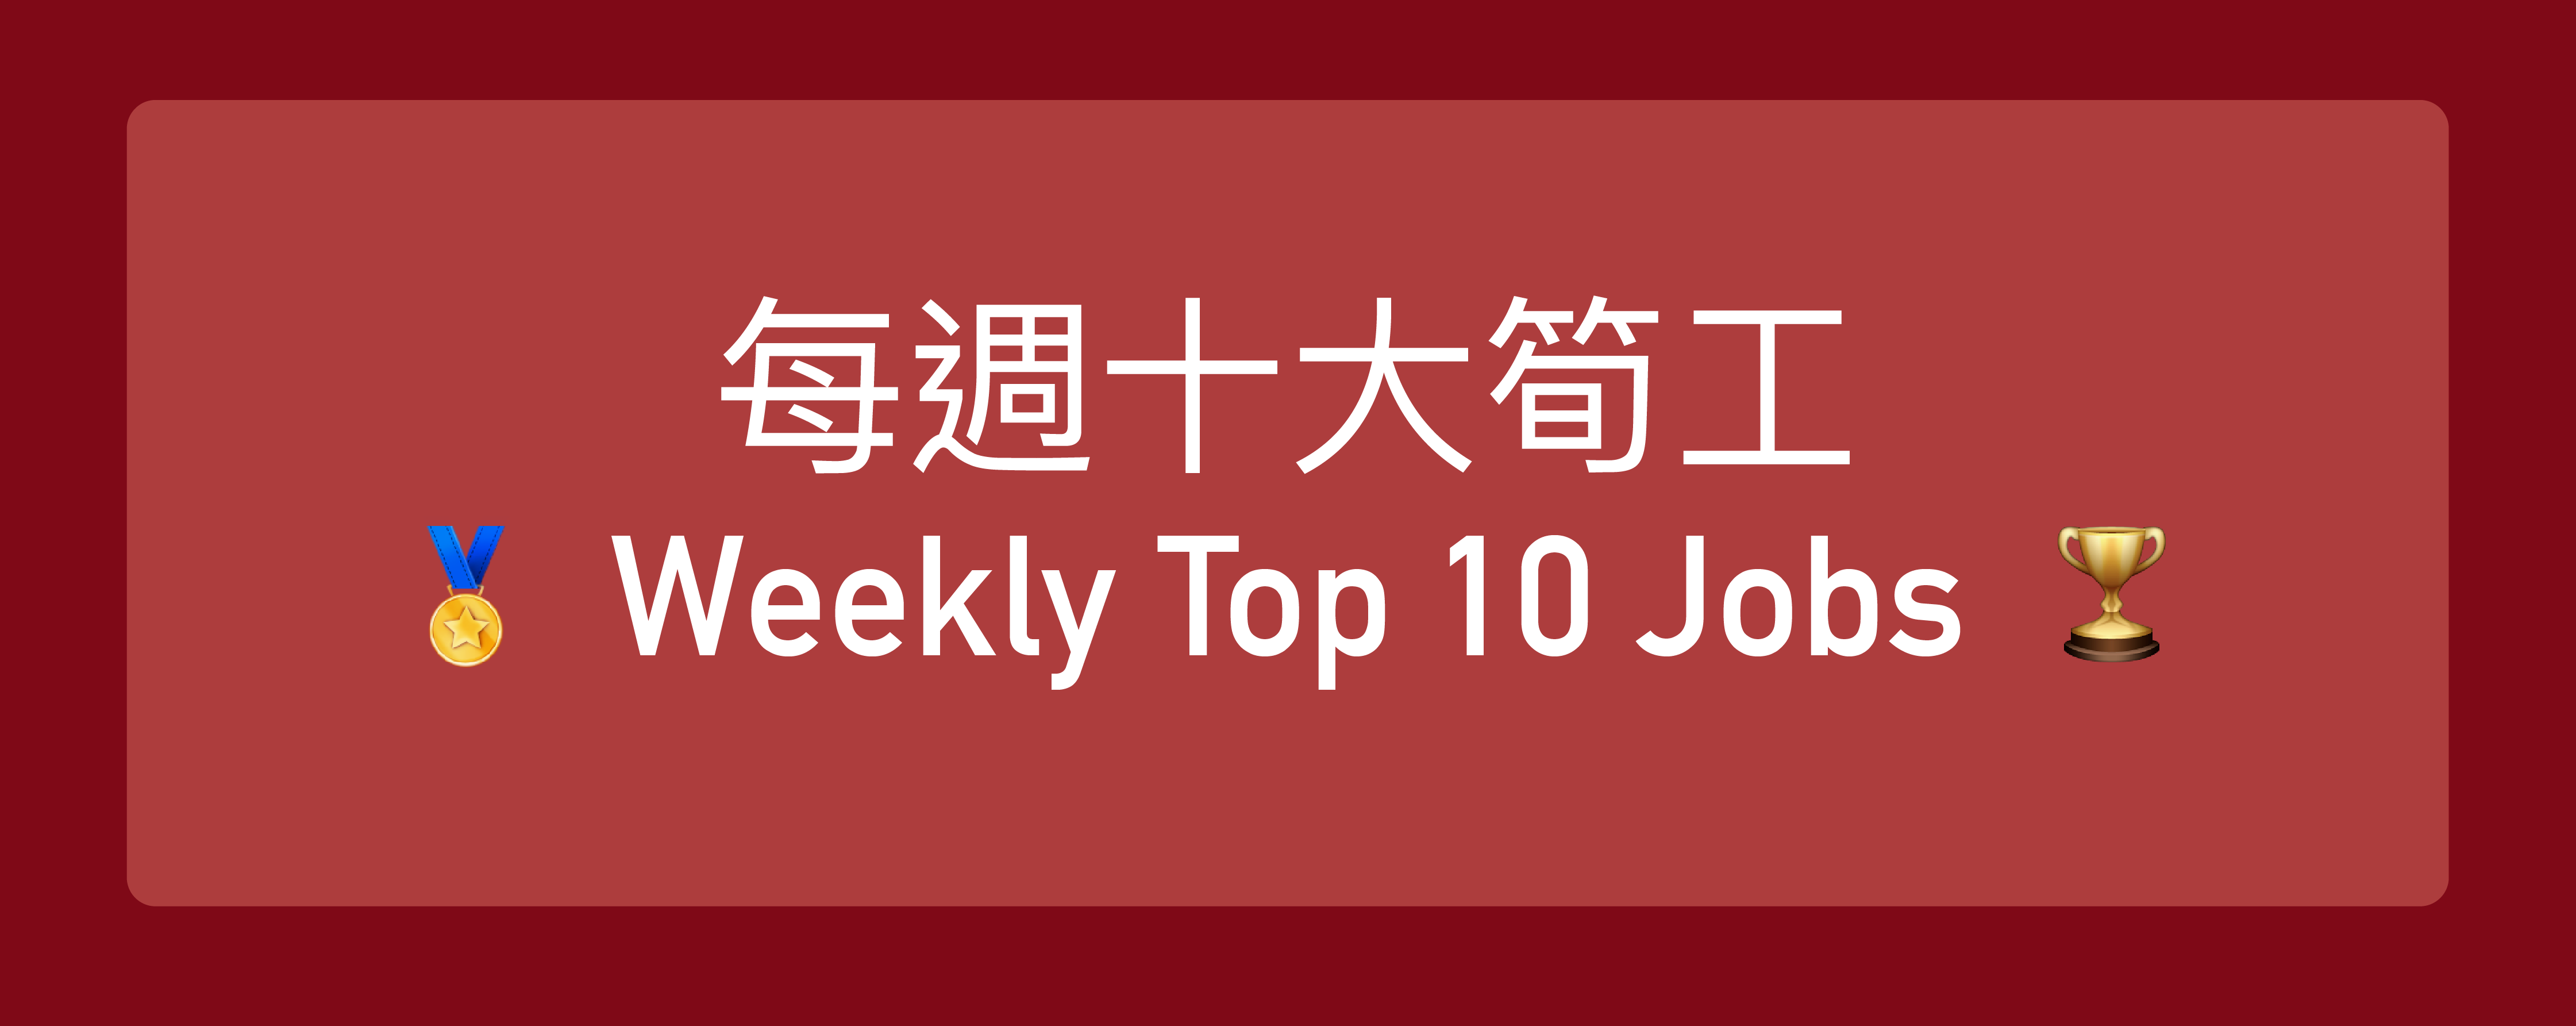 Top 10 Jobs weekly-01.png